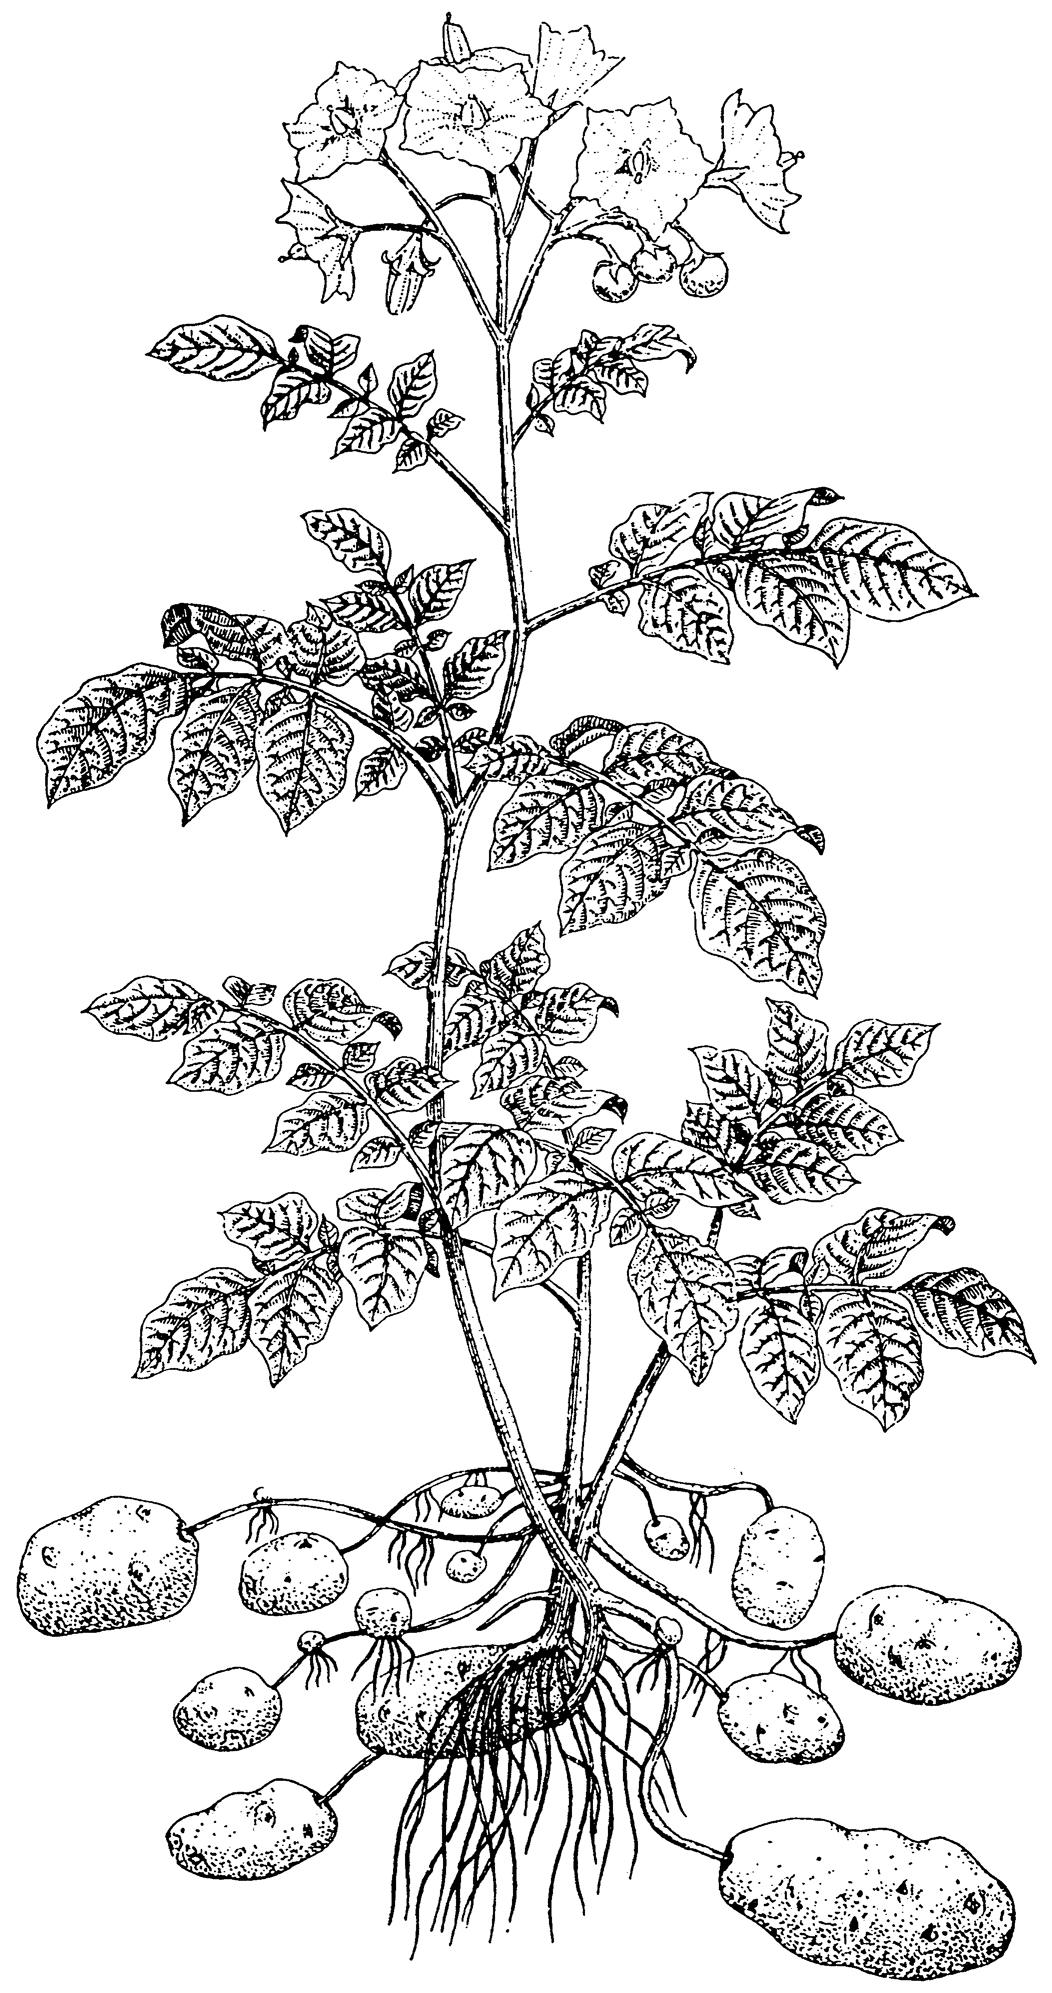 Potato Plant Diagram Sketch Coloring Page